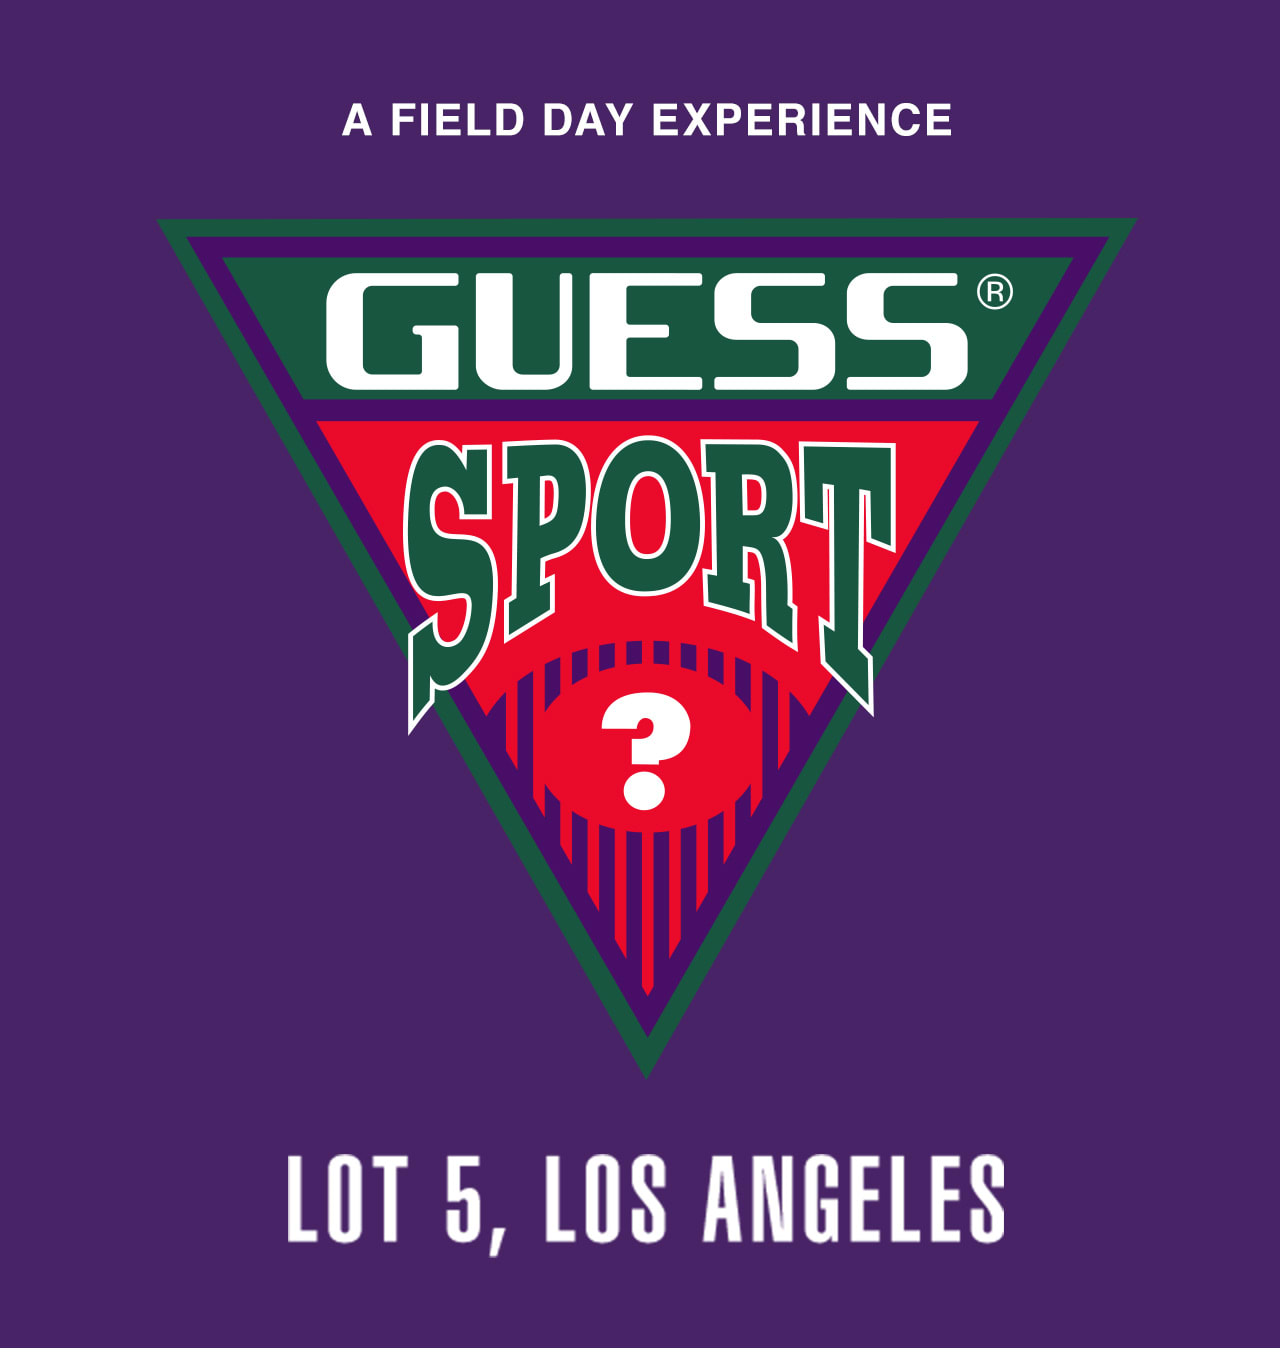 GUESS SPORT A FIELD DAY EXPERIENCE